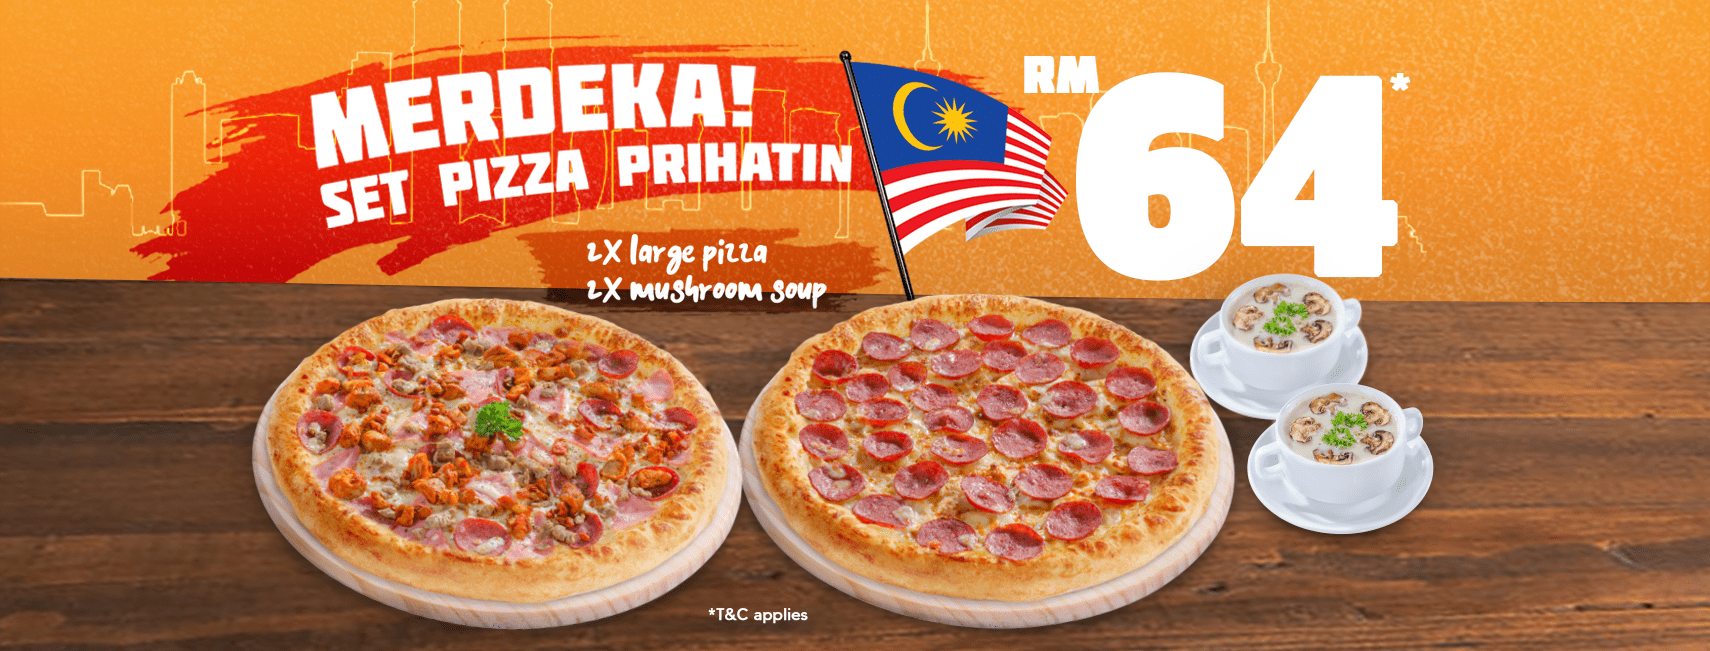 US Pizza Malaysia Promotion Buy 1 Free 2 Banner